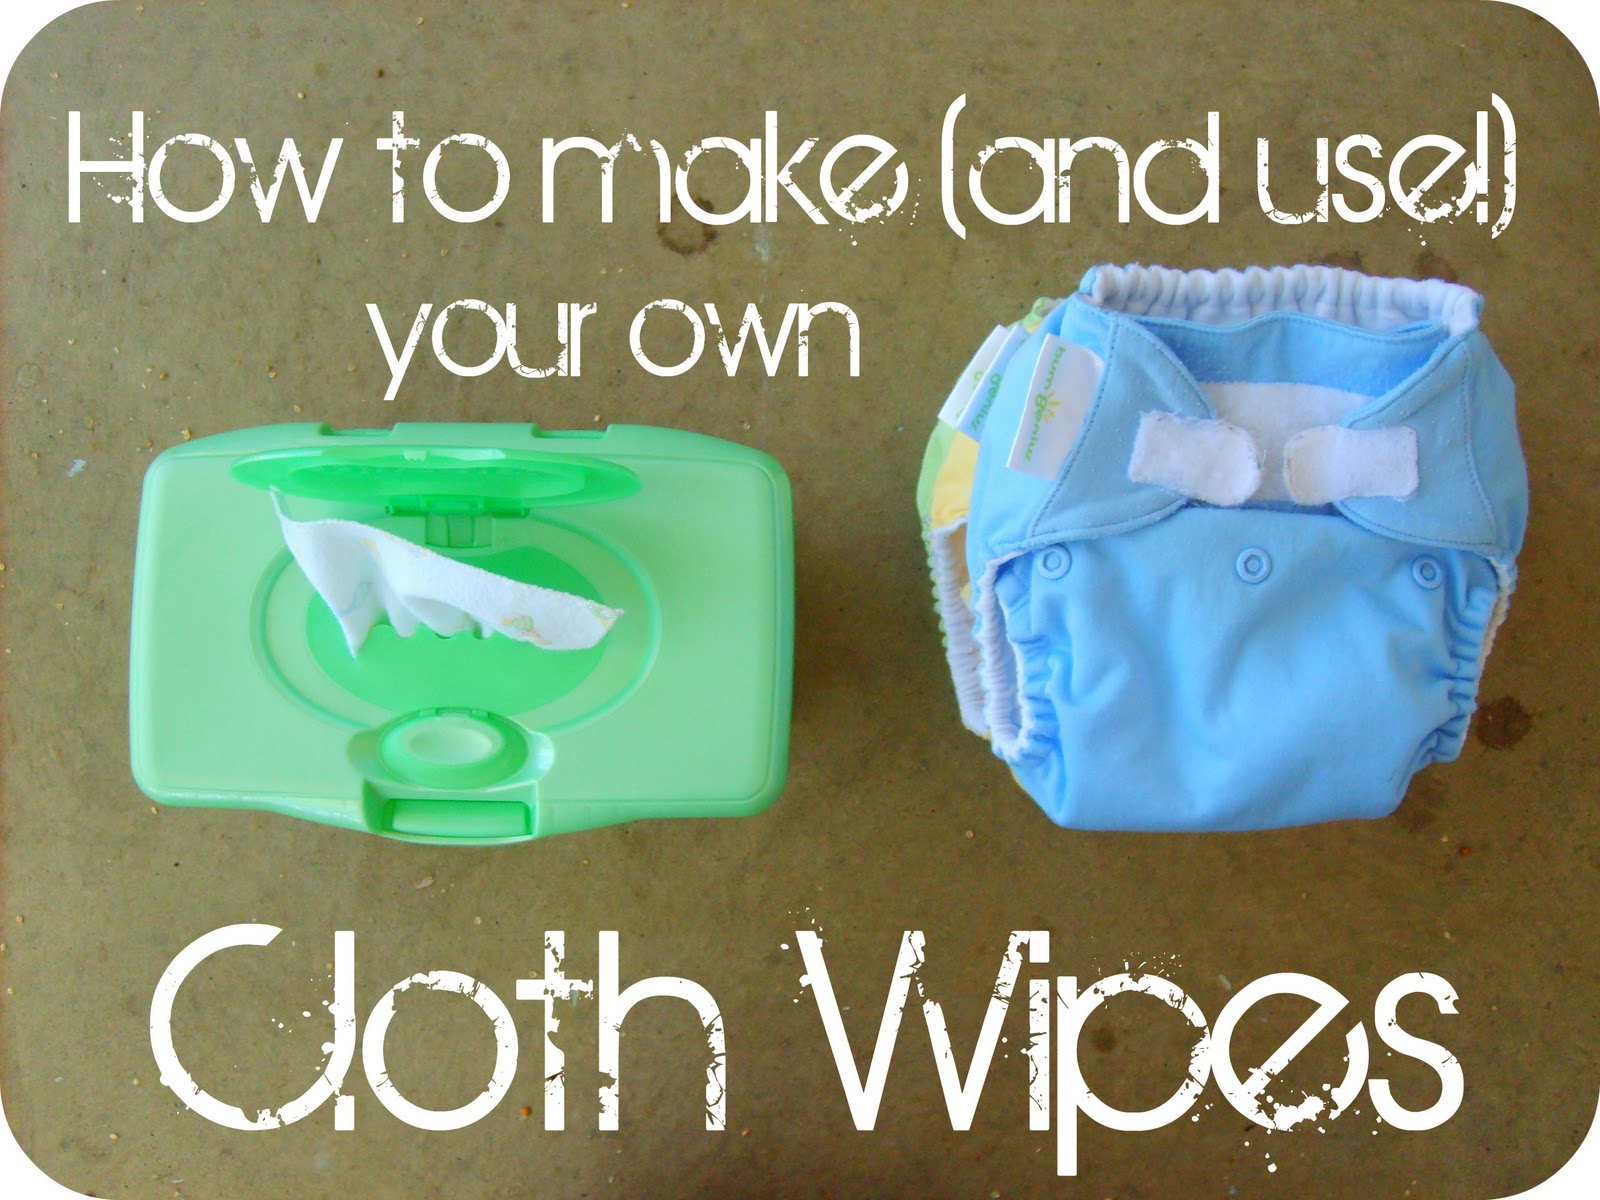 the red kitchen How to make and use your own Cloth Wipes